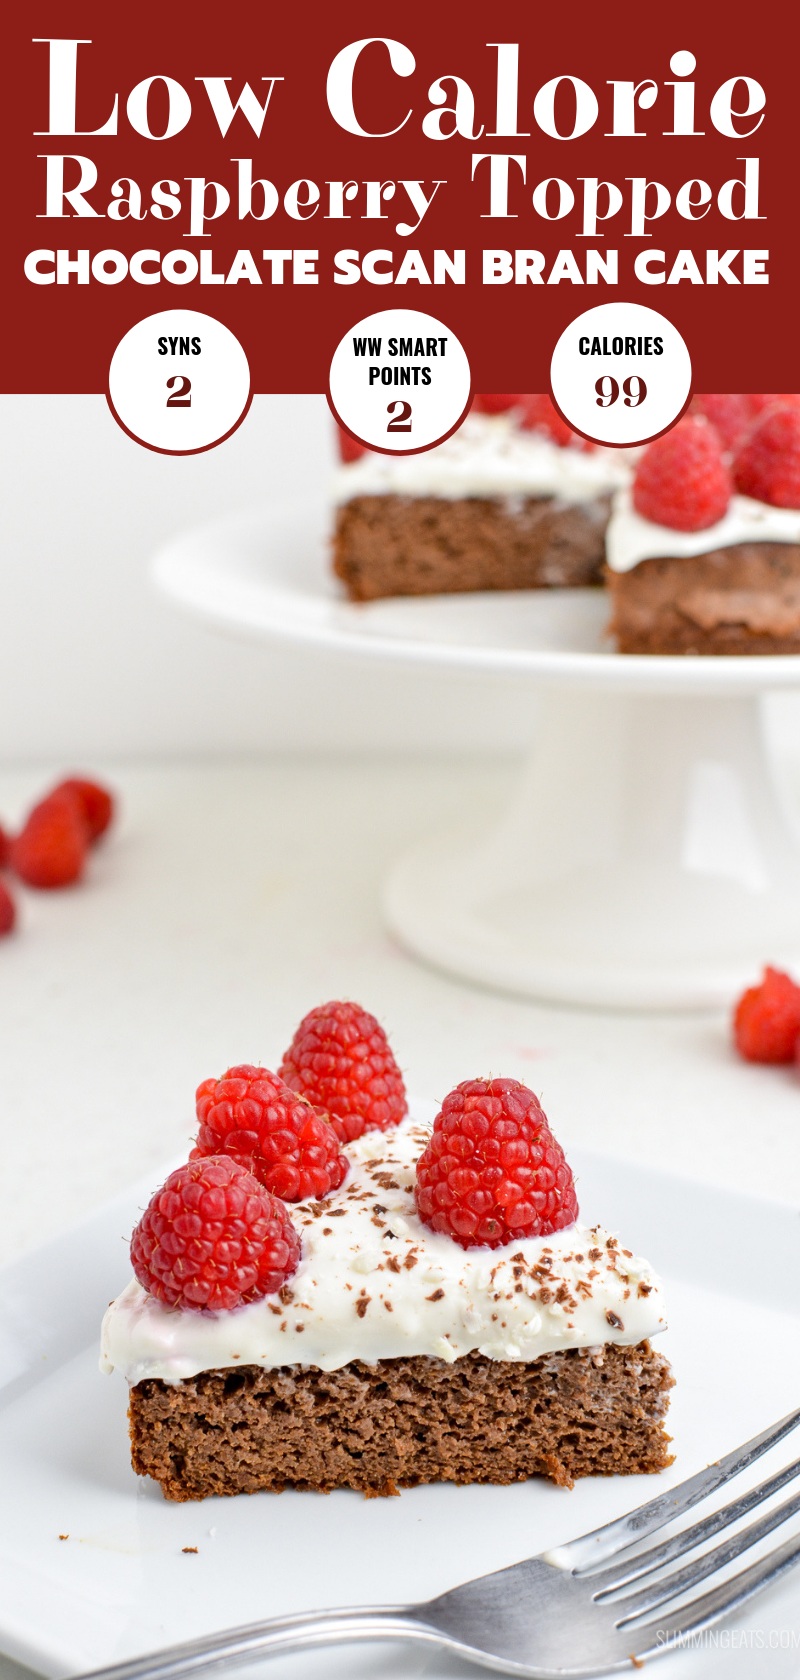 low calories raspberry topped chocolate scan bran cake pin image